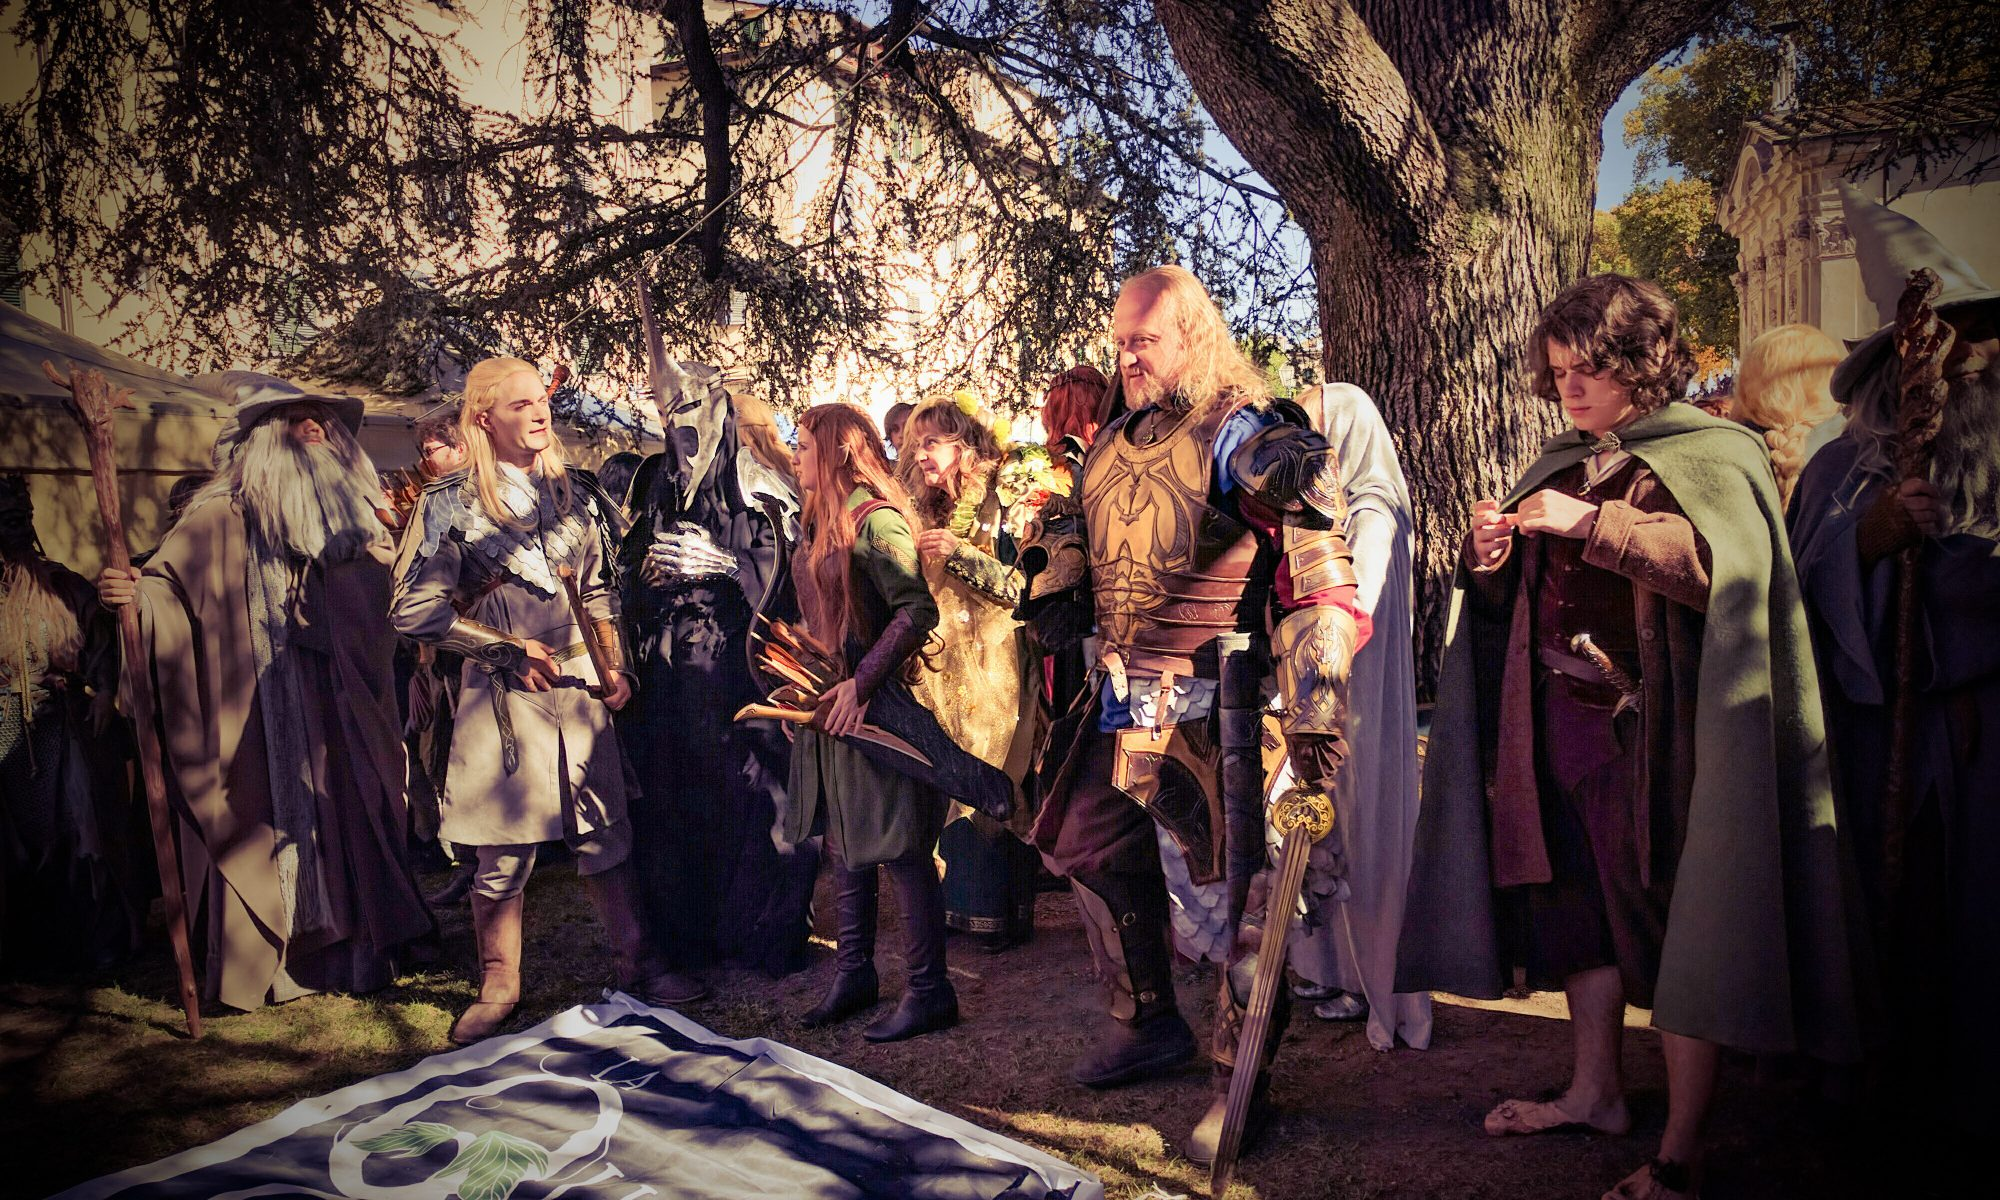 The Fellowship of the Ring di Tolkien 2016 LuccaGold - Foto di Laura Pederzoli